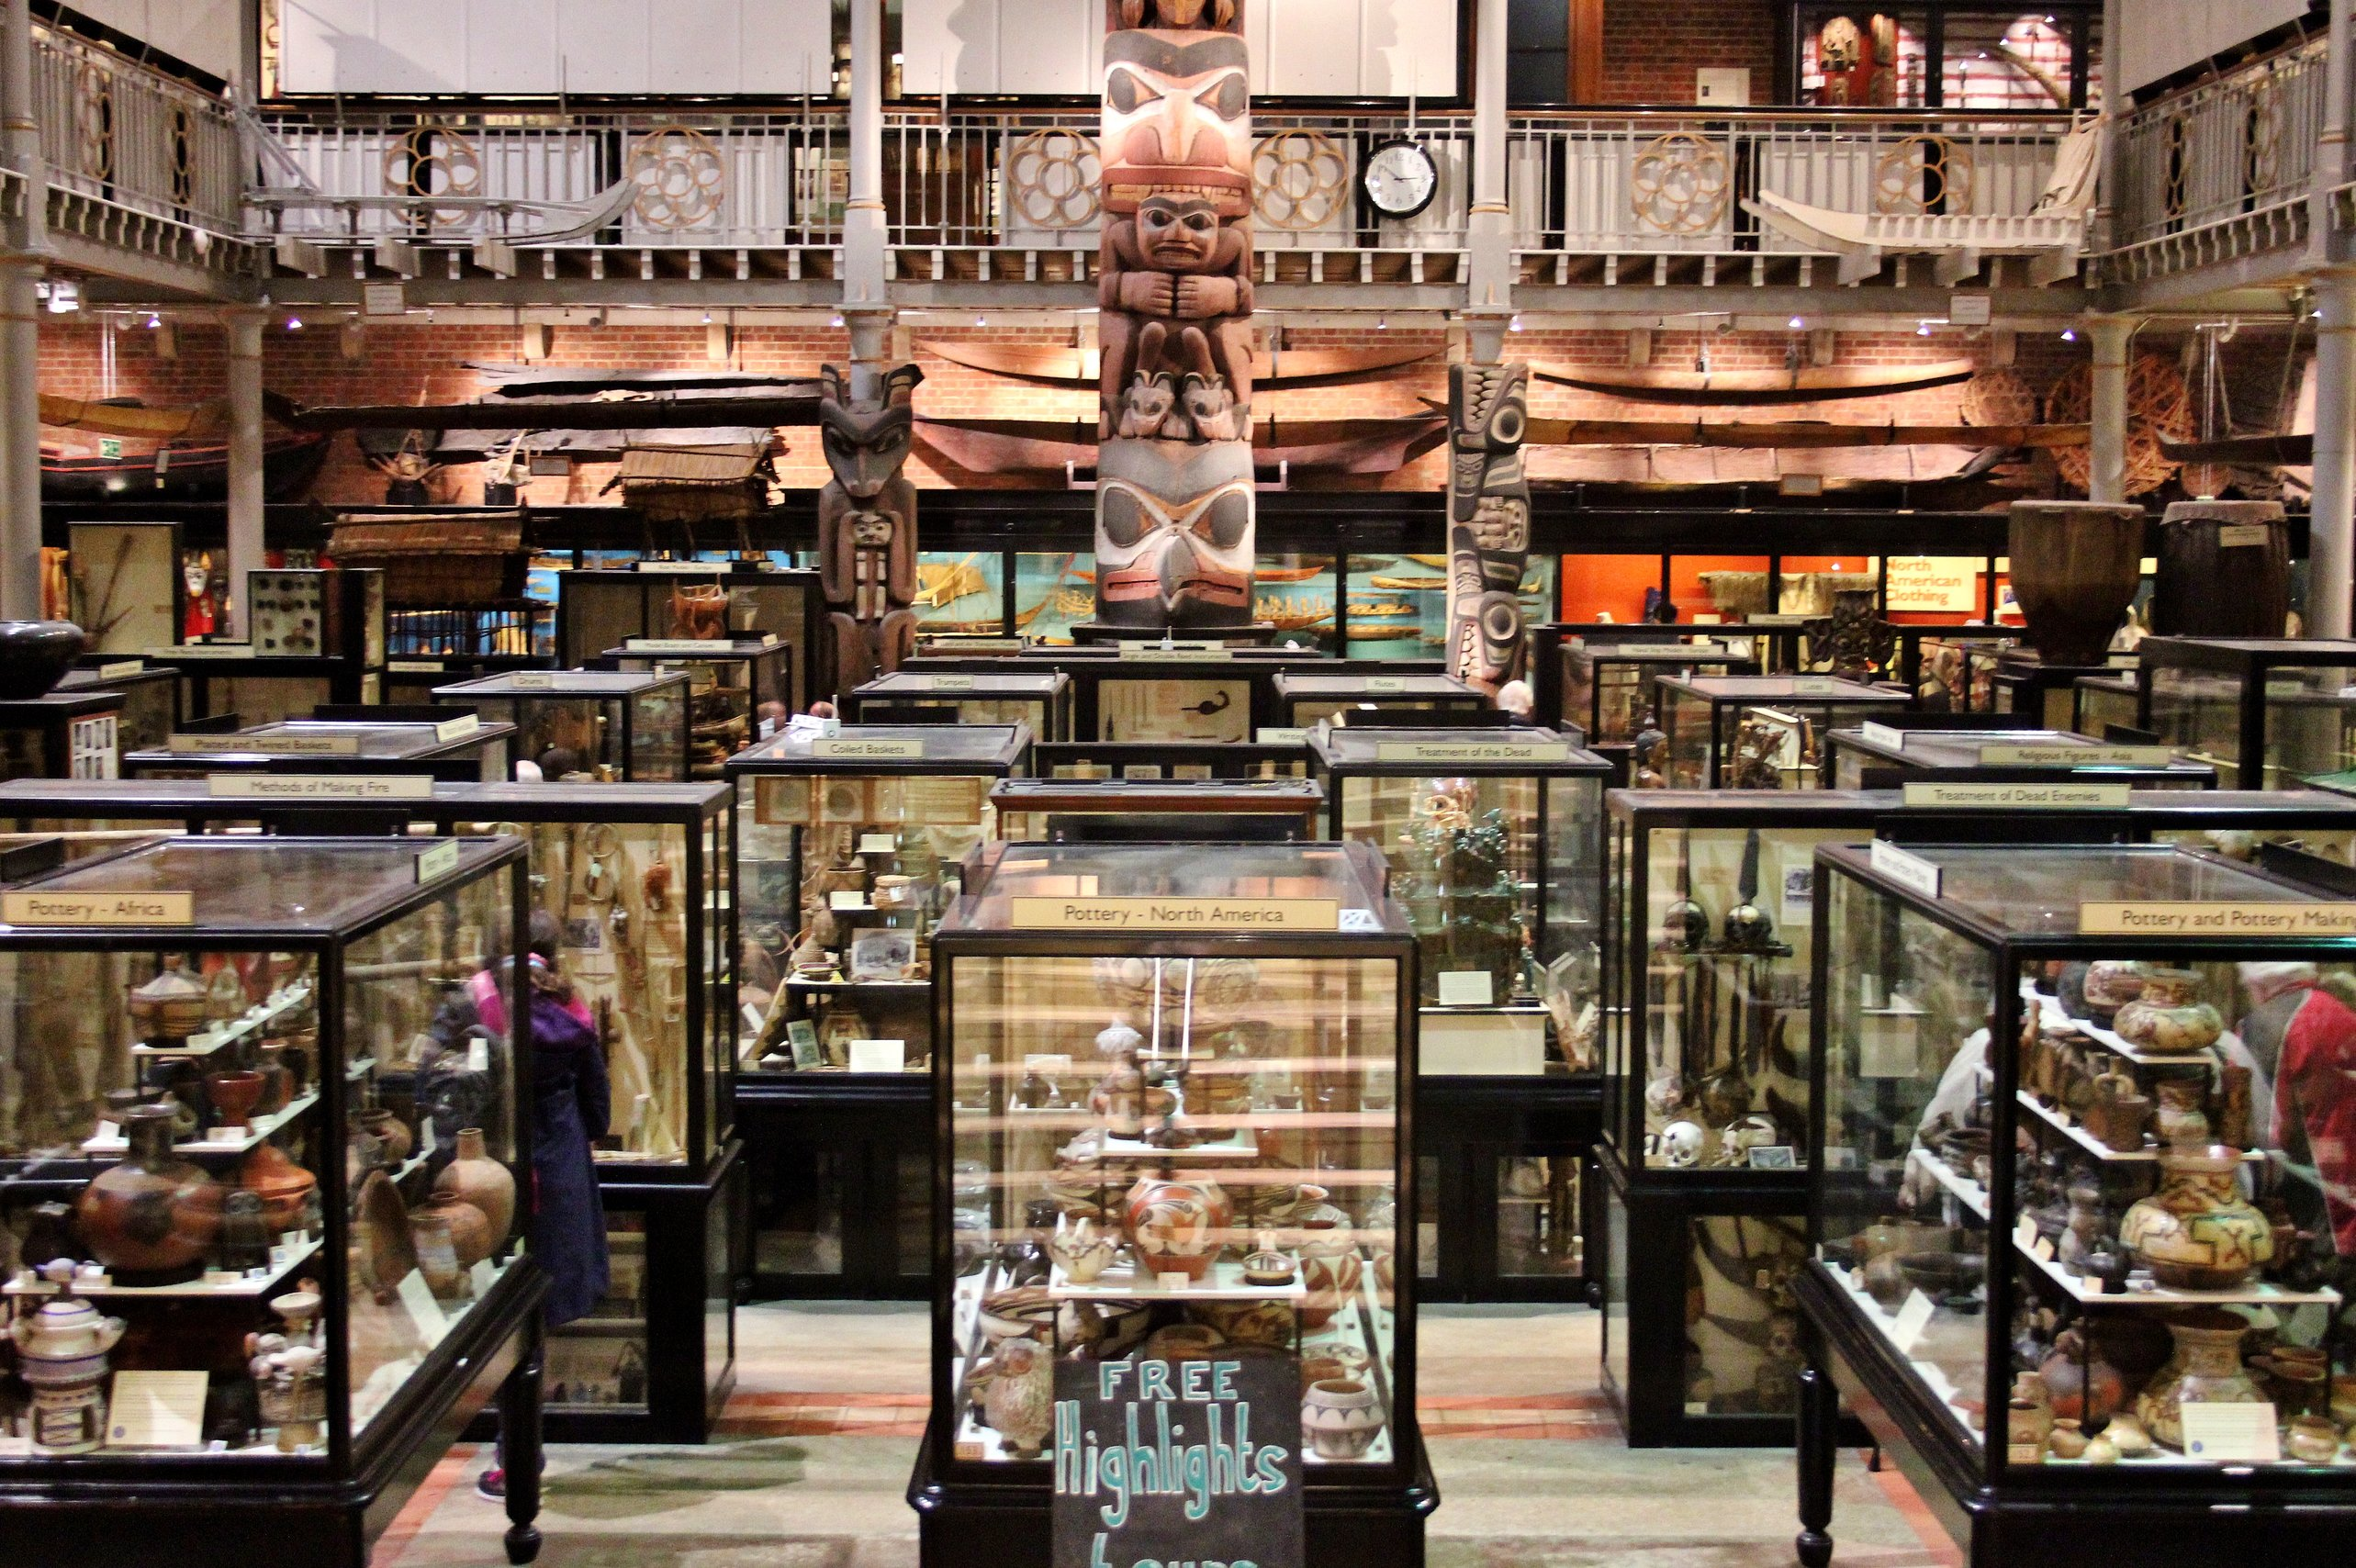 Pitt-Rivers-Museum-Oxford Iceland Russia Map on japan map russia, physical and political map russia, armenia map russia, moldova map russia, russia map russia, moscow map russia, world map russia, singapore map russia, estonia map russia, georgia map russia, poland map russia, turkmenistan map russia, azerbaijan map russia, tajikistan map russia, uzbekistan map russia, europe map russia, sweden map russia, taiwan map russia, kazakhstan map russia,